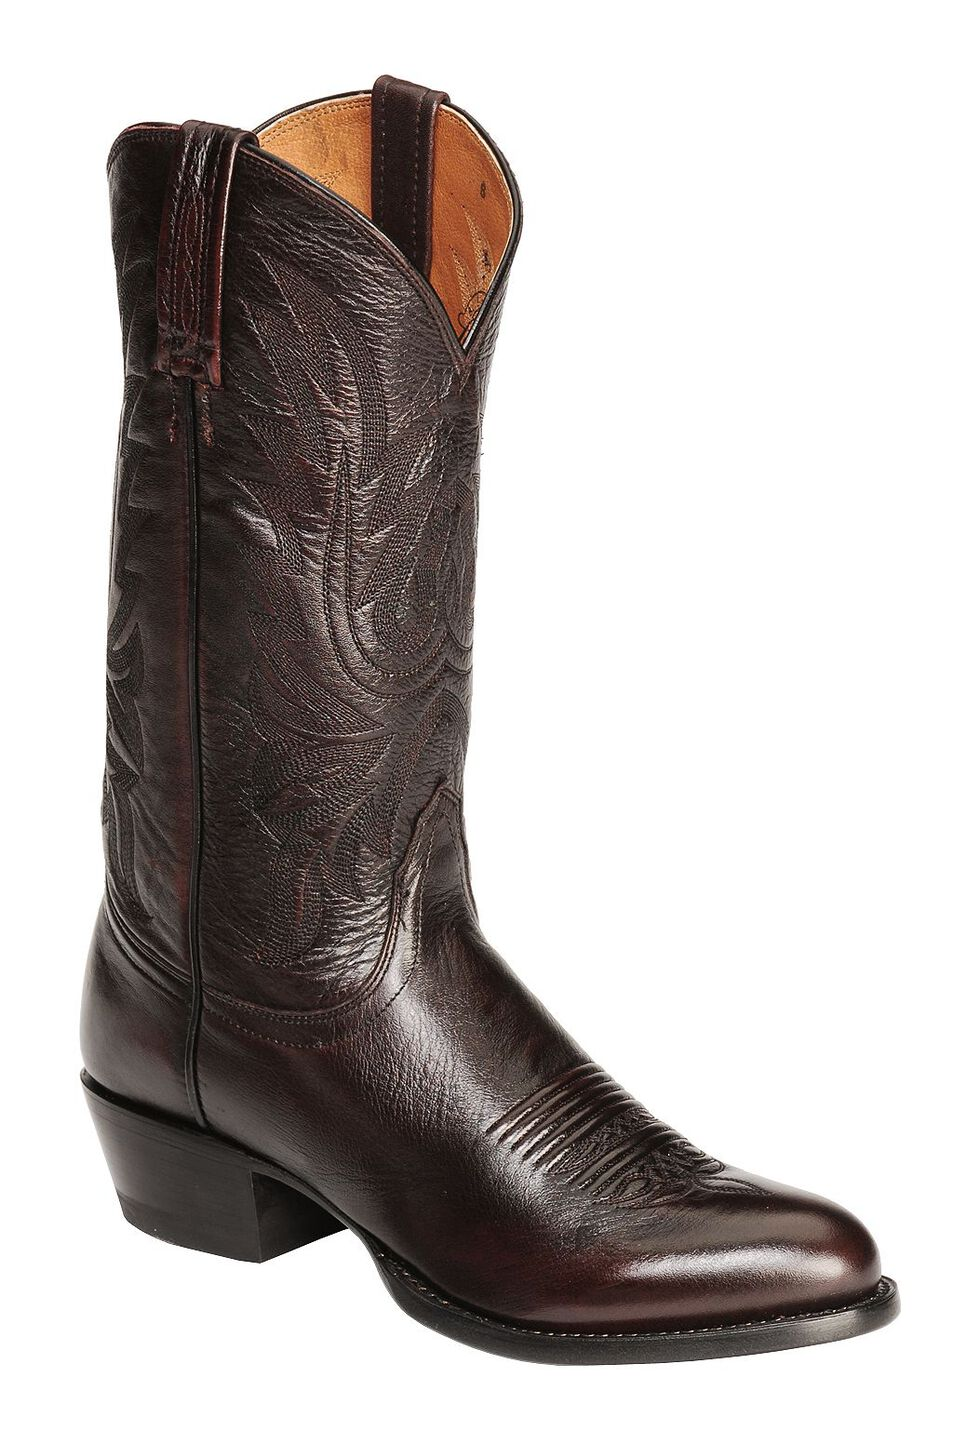 Lucchese Handcrafted Lonestar Calf Cowboy Boots - Medium Toe, Black Cherry, hi-res